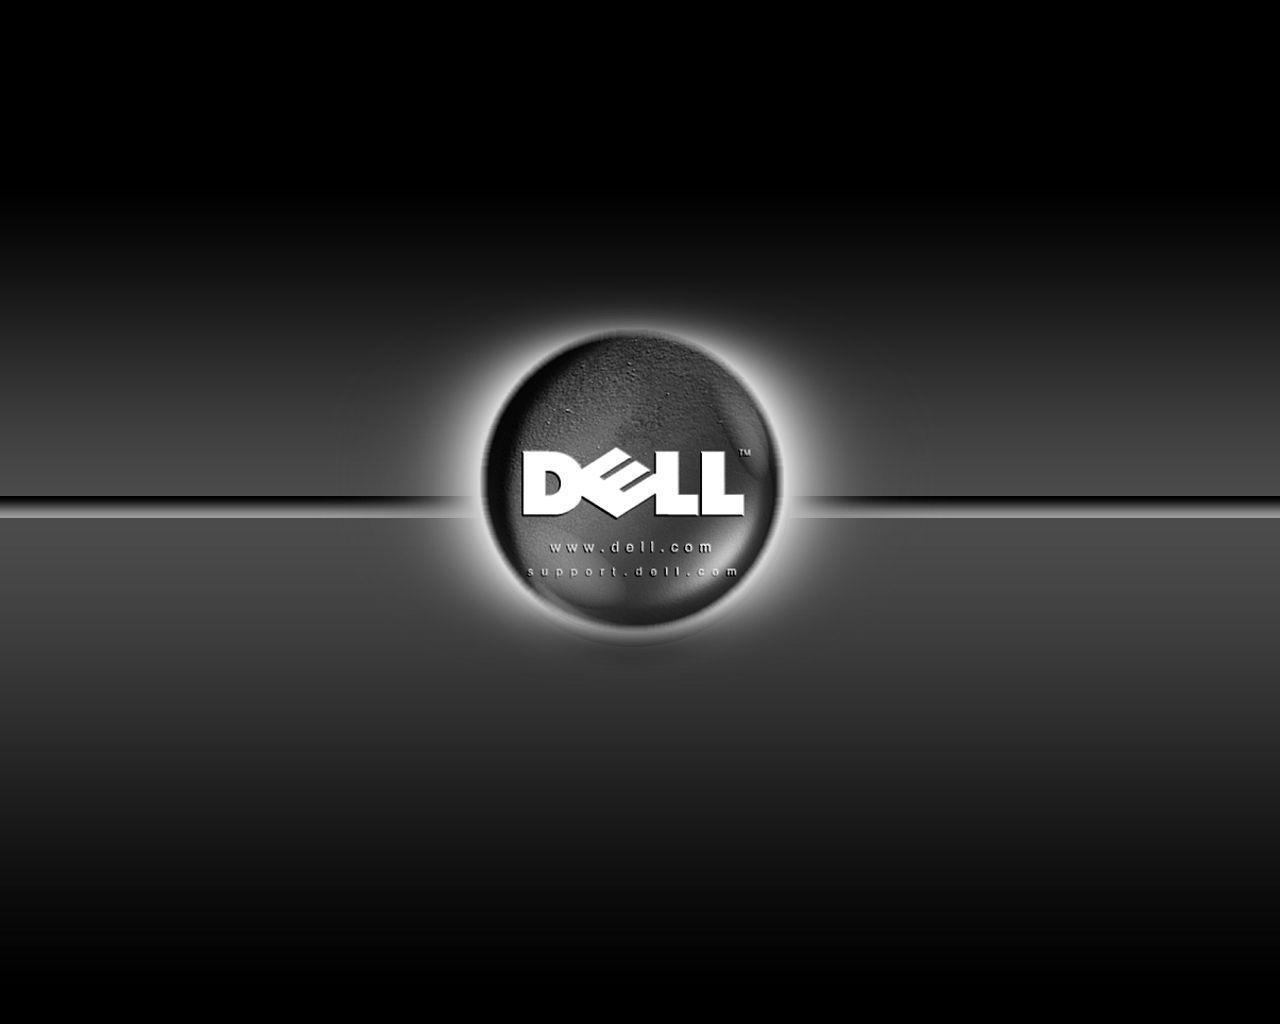 Dell Hd Wallpapers Top Free Dell Hd Backgrounds